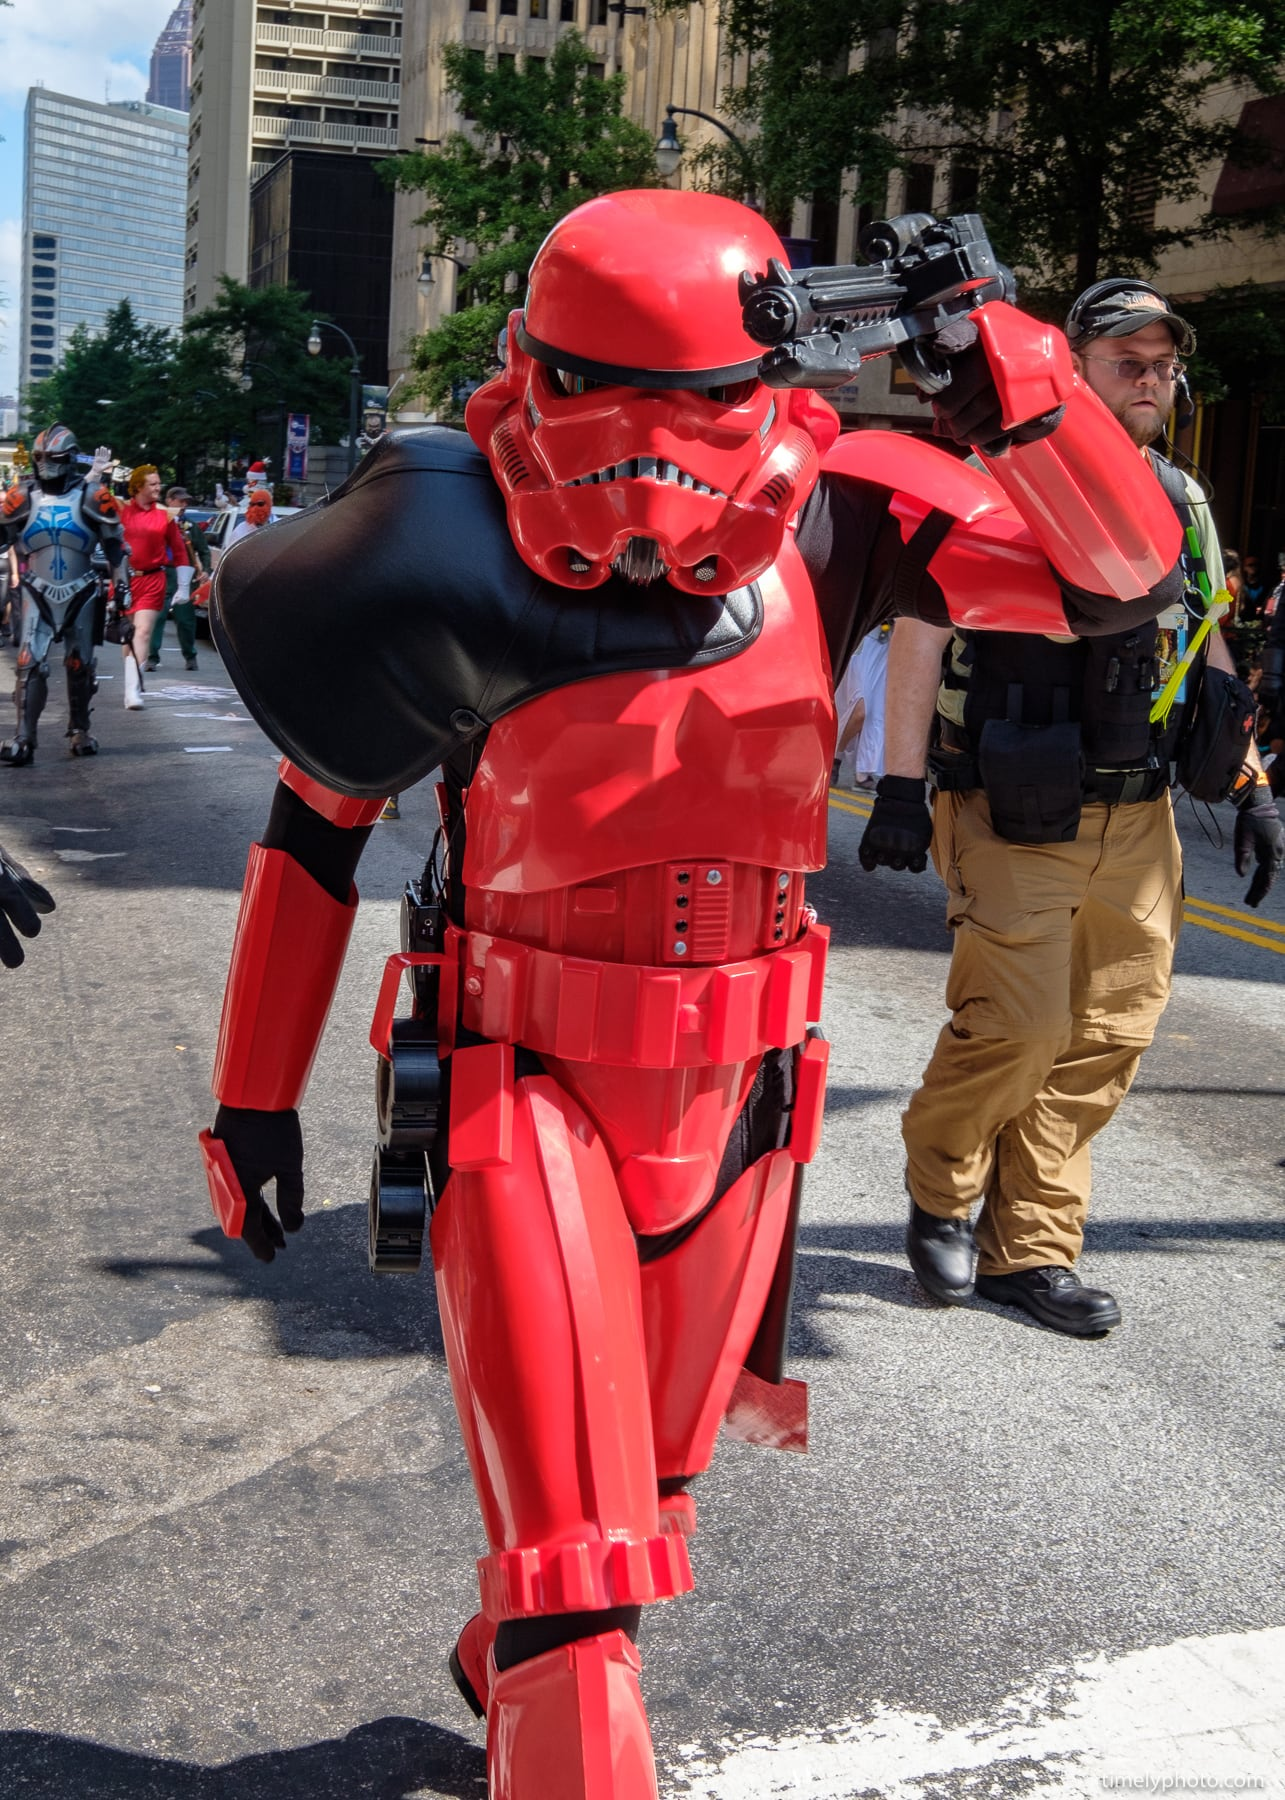 2018-09-01-0613-DragonCon-Parade-2018-web.jpg